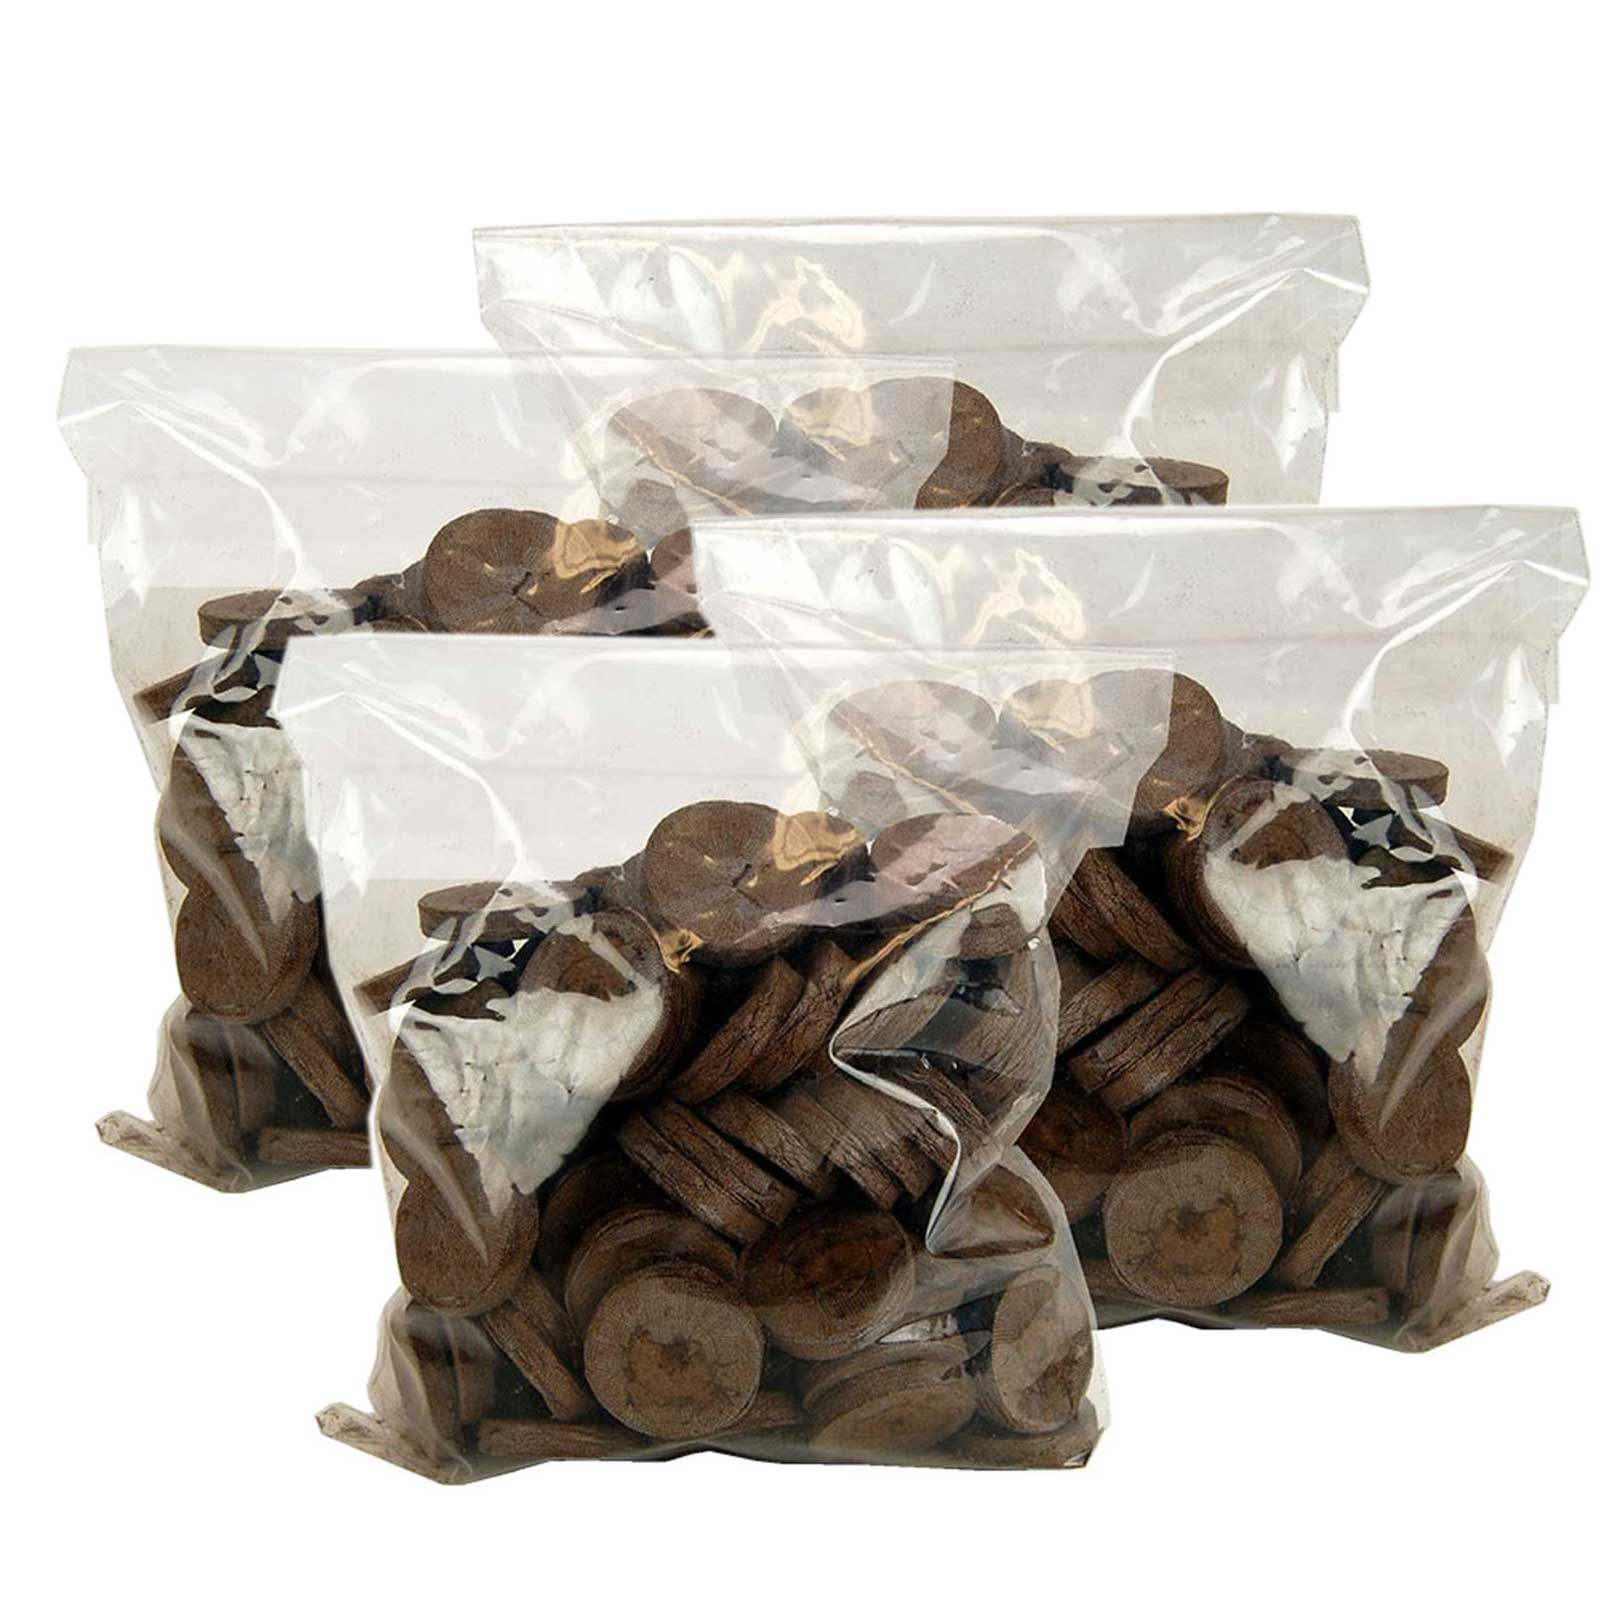 Jiffy 7 seed starter pellets are the best way to start garden seedlings indoors early. Biodegradable and root permeable. Just add water, sow and transplant the seedlings directly.  Available in small quantities to bulk. Choose 36 mm or 42 mm sizes.